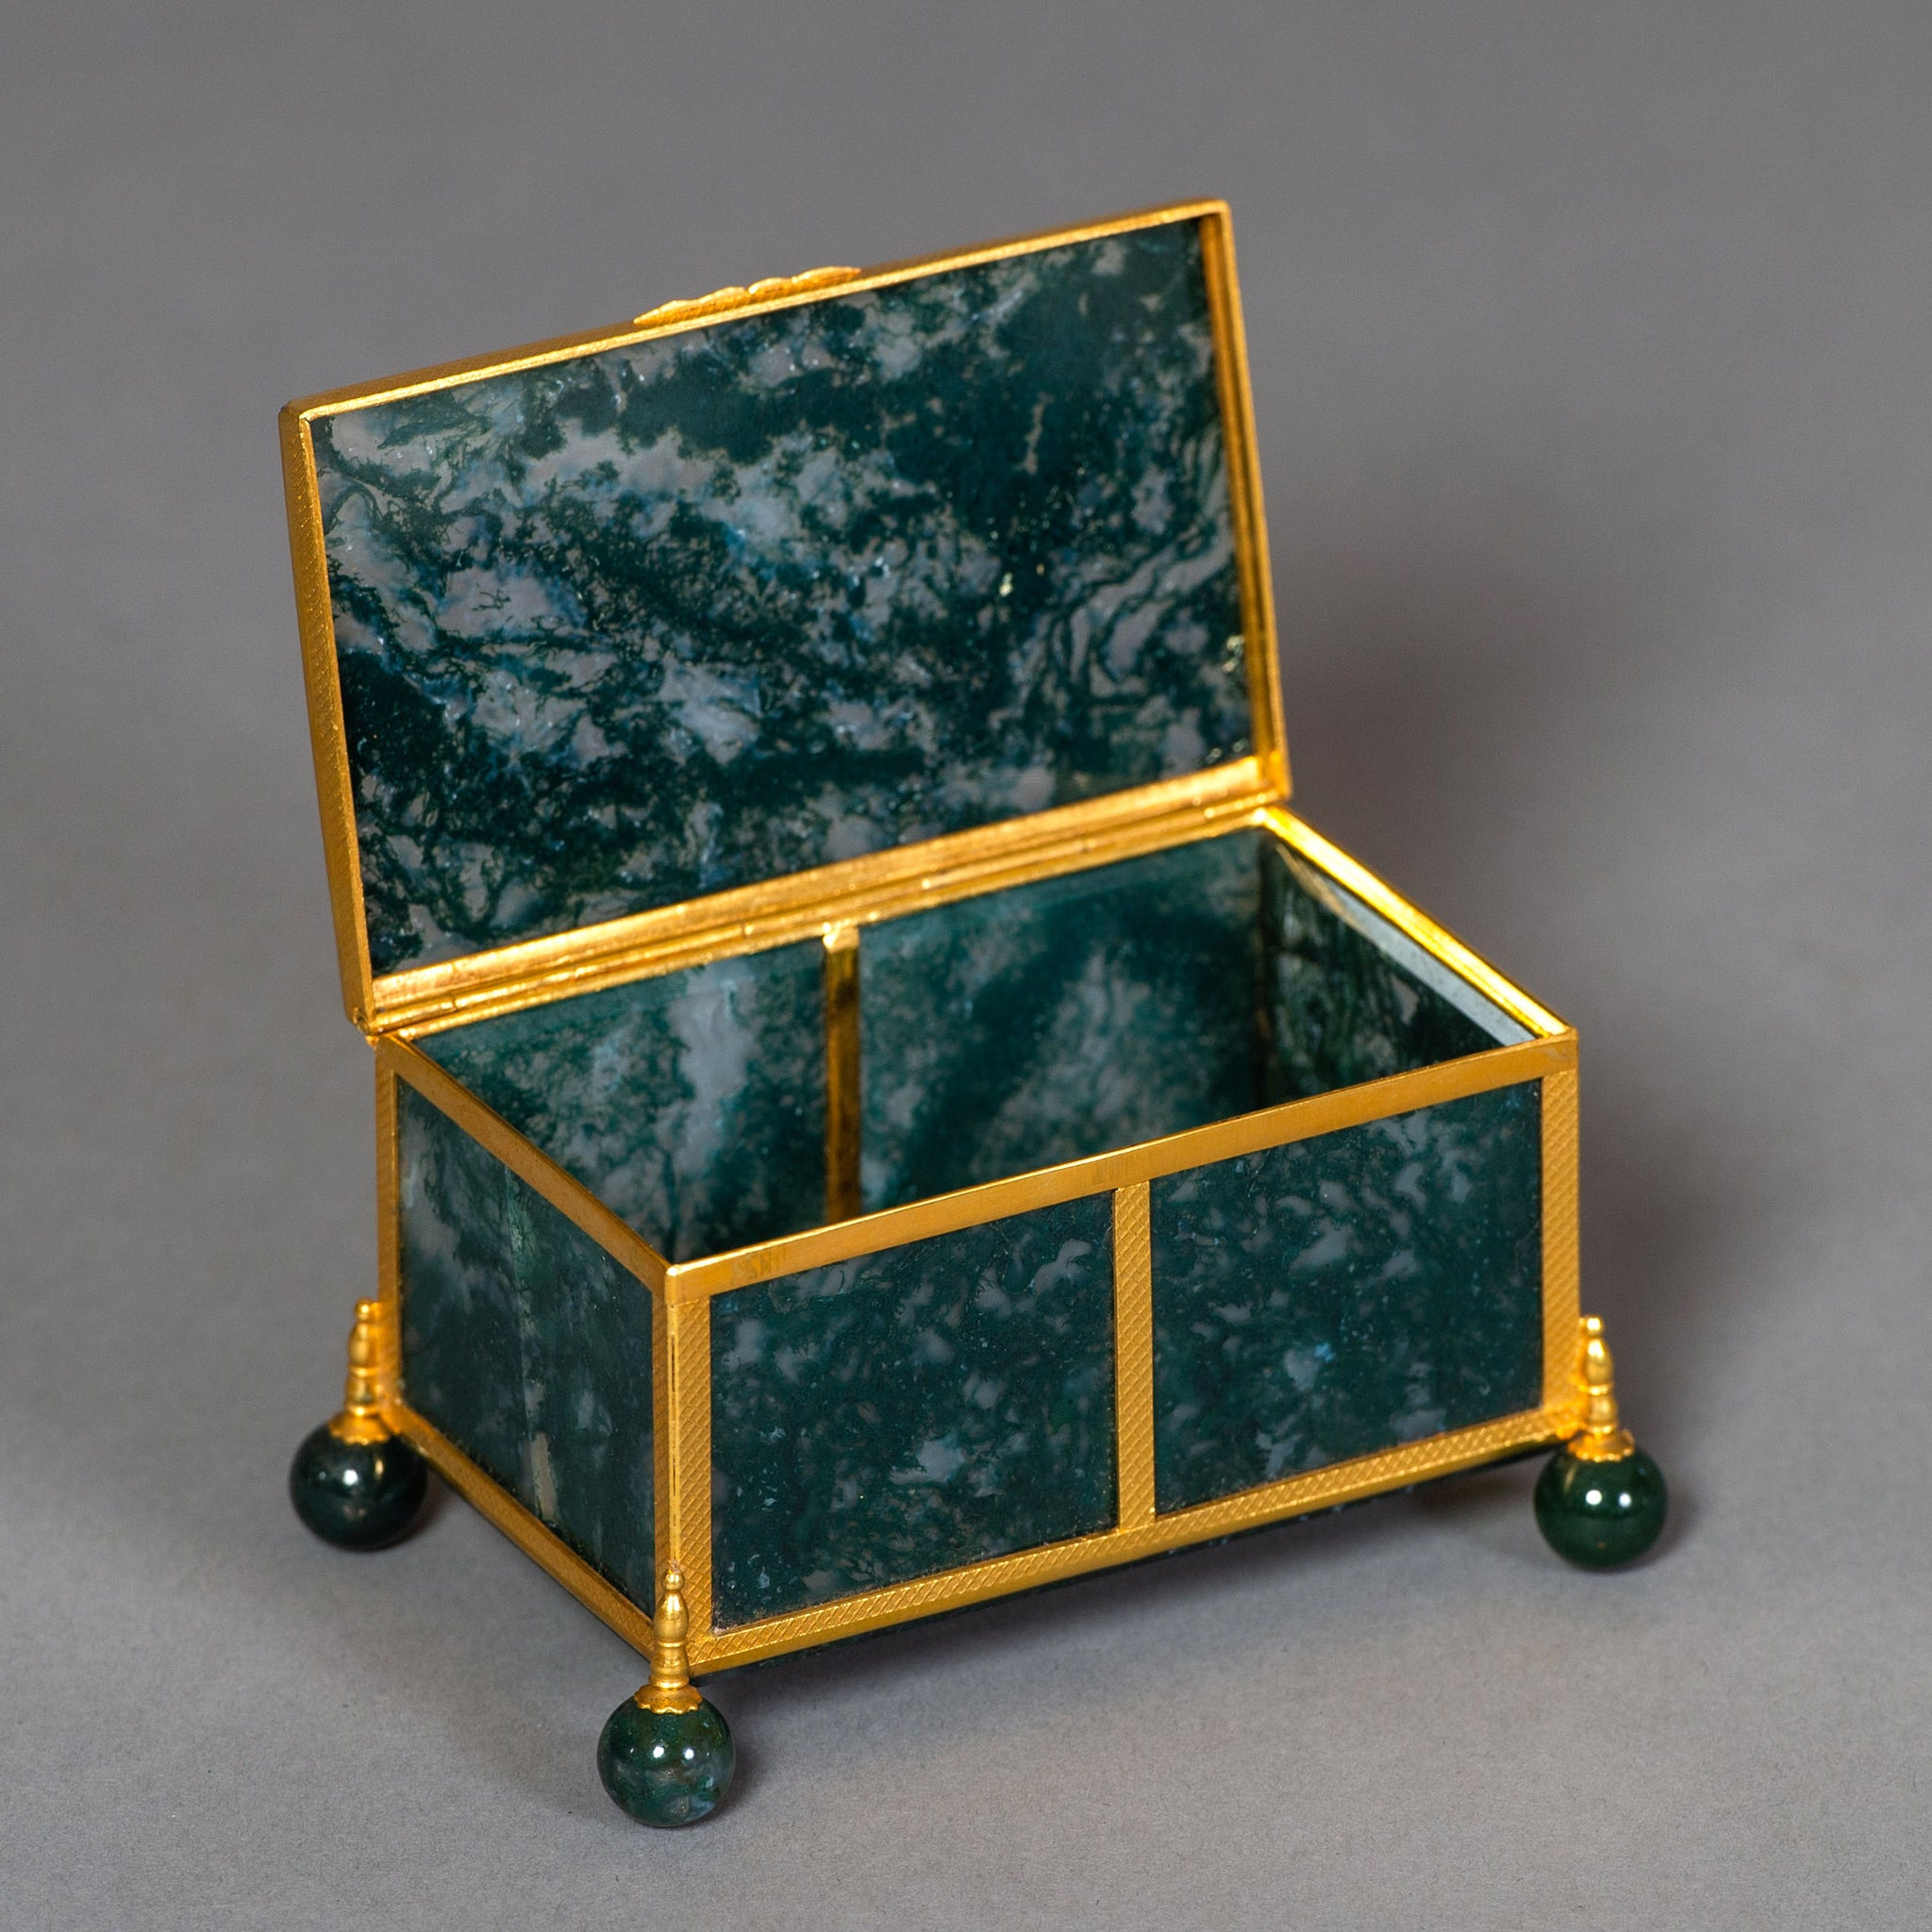 Collection of Austro-Hungarian Agate Caskets